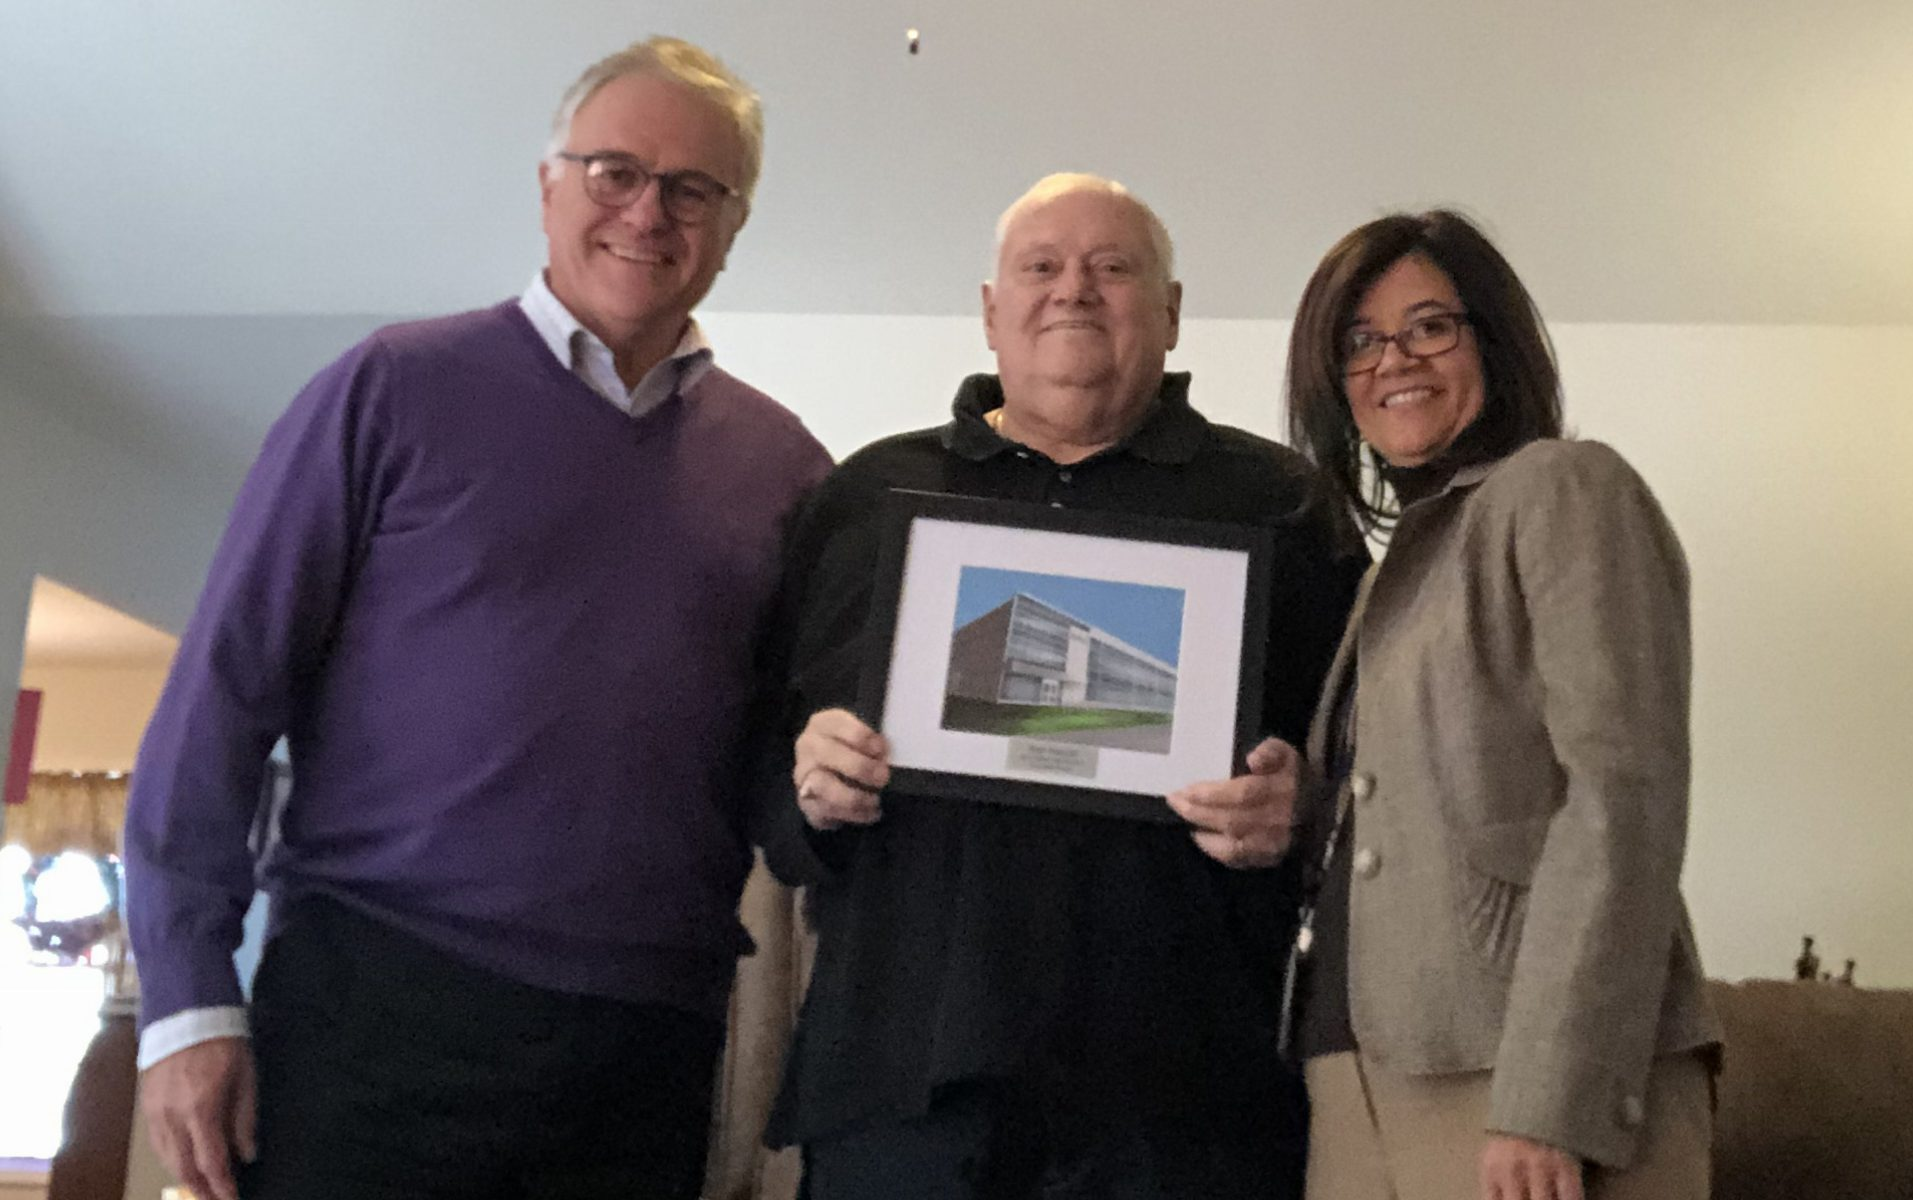 Photo of Jim Baldwin, Paul Puccio and Dr. Gladys I. Cruz